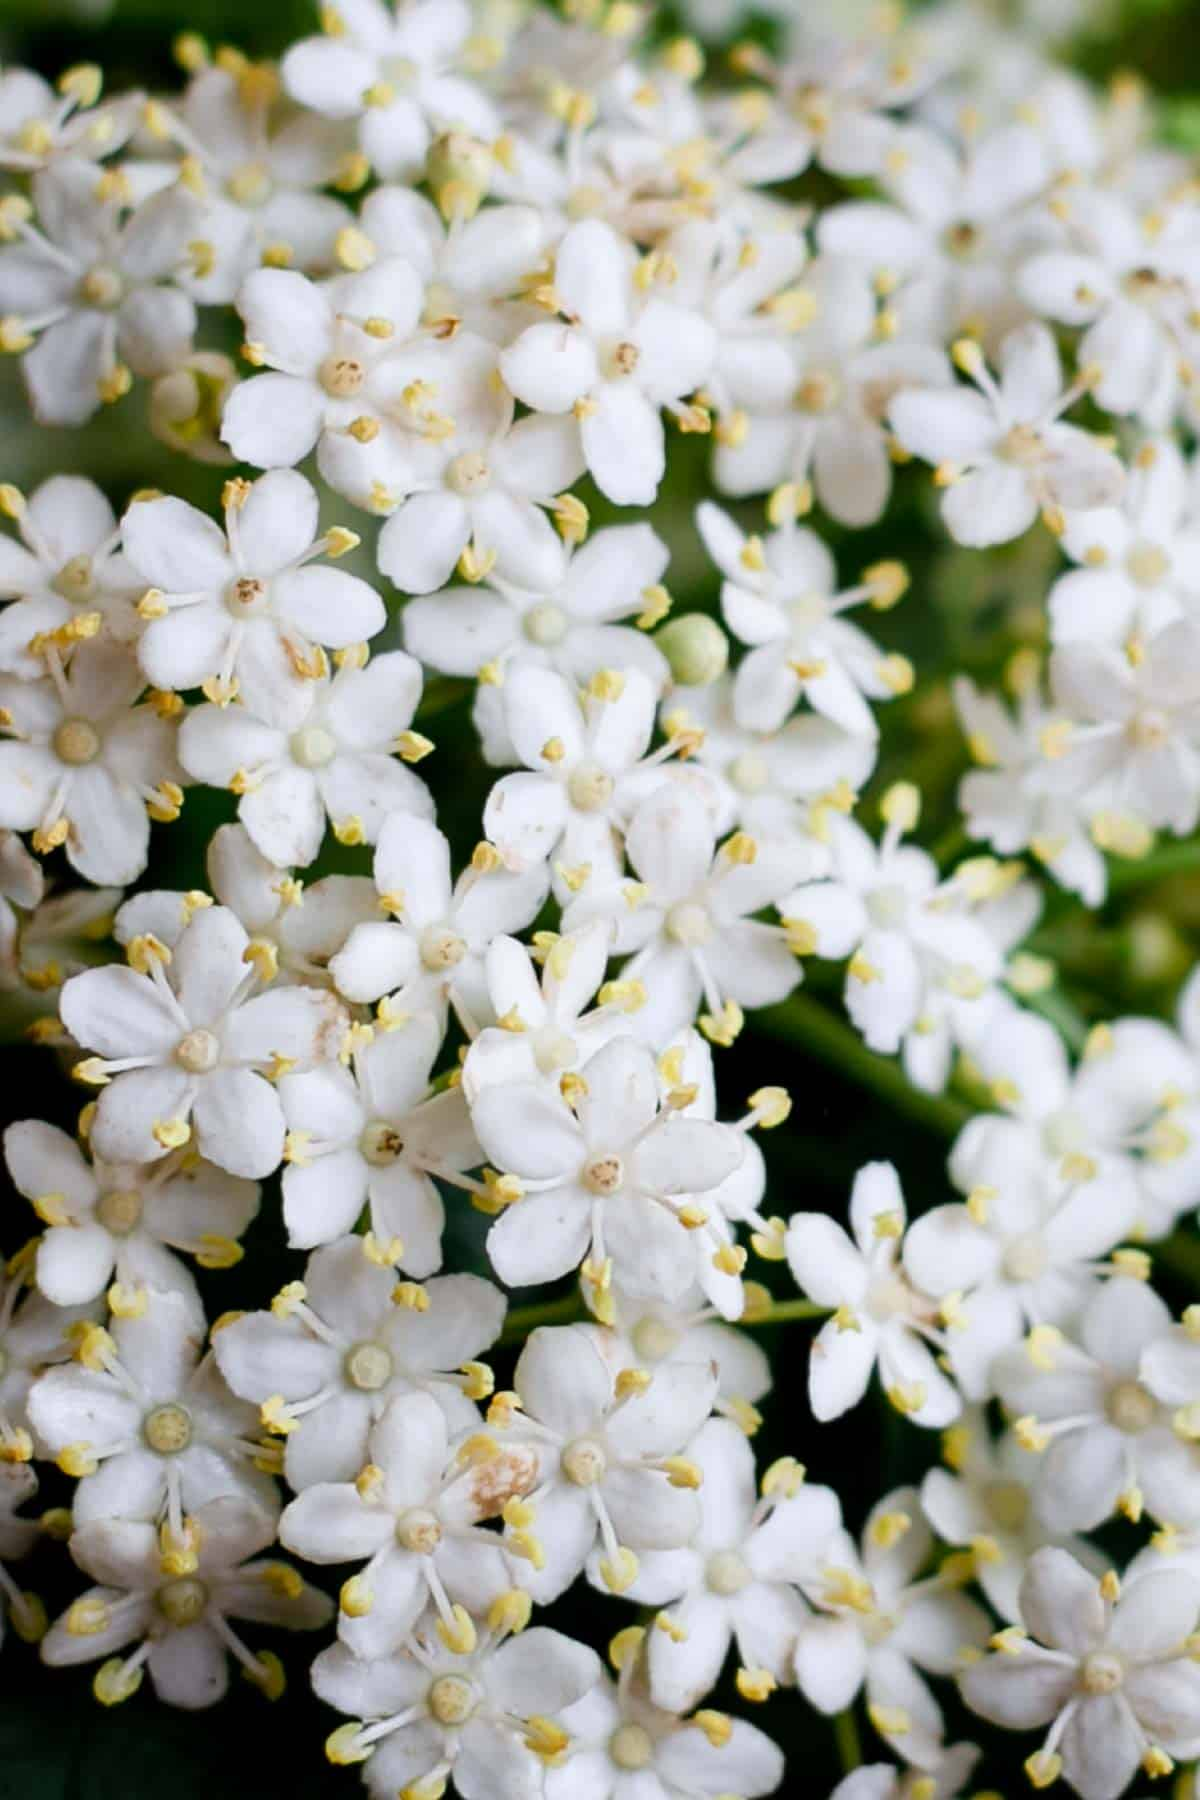 Beautifully fragrant, white and lacy elderflowers, ideal for making a cordial! #elderflowercordial #drinkrecipe #elderflower | via @annabanana.co